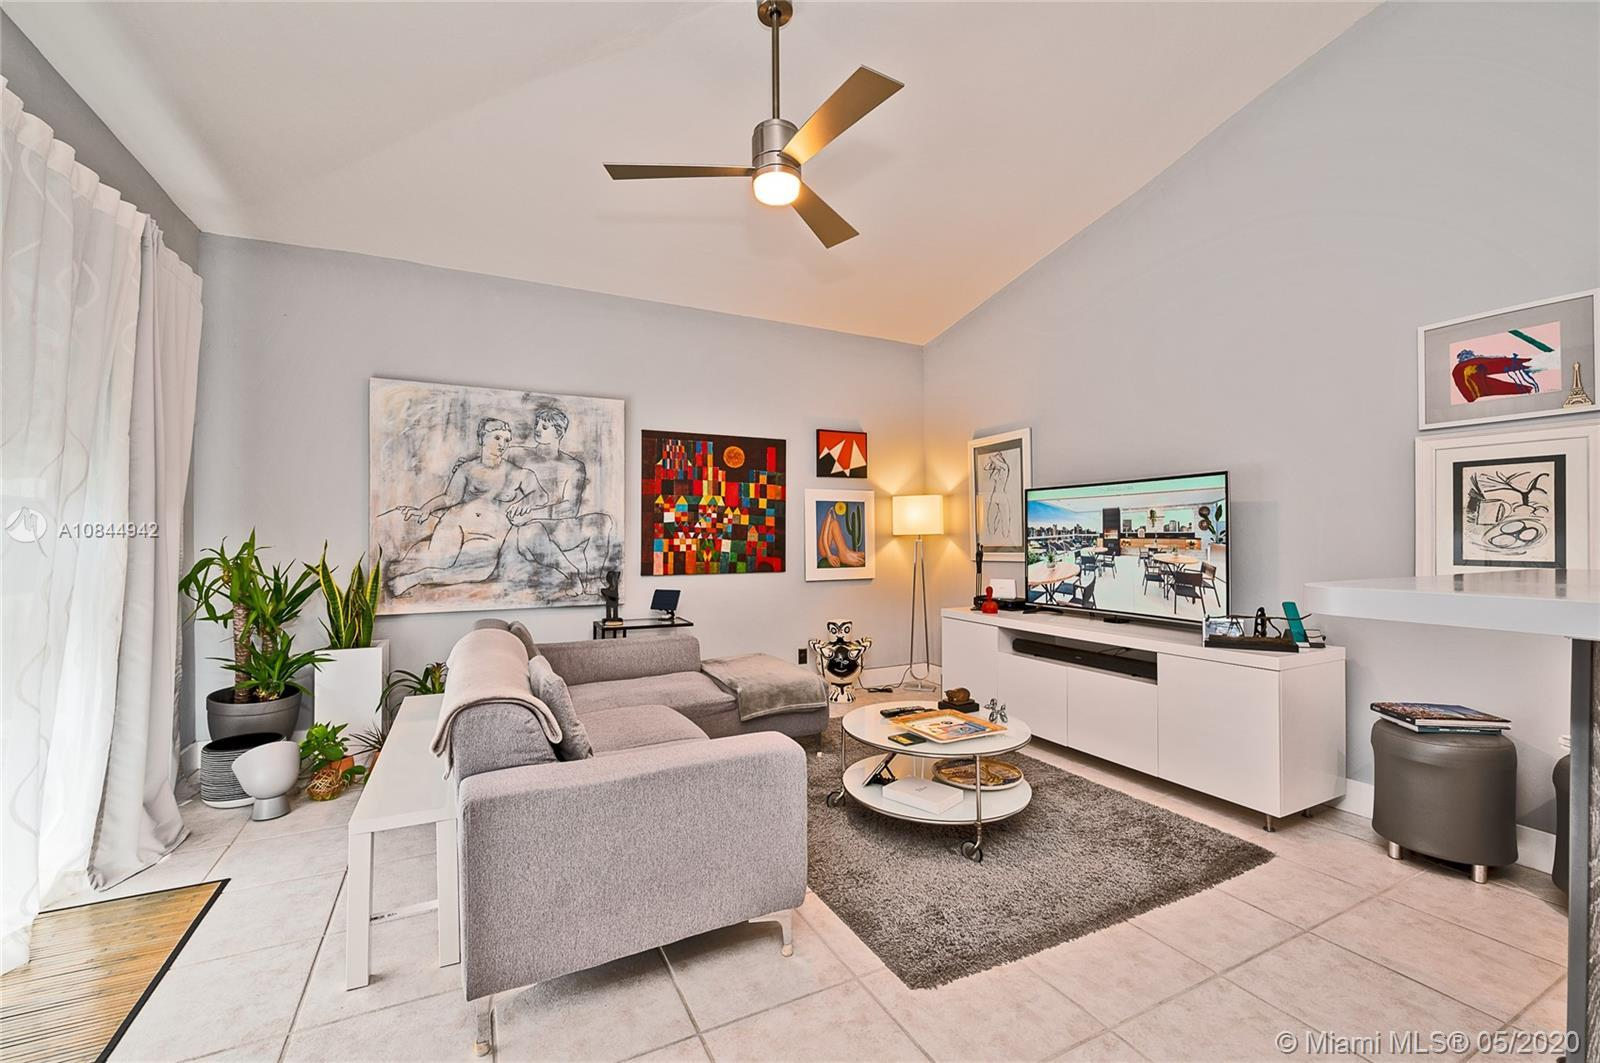 Great location! This fantastic move-in ready home is located in the sought after Gated community of